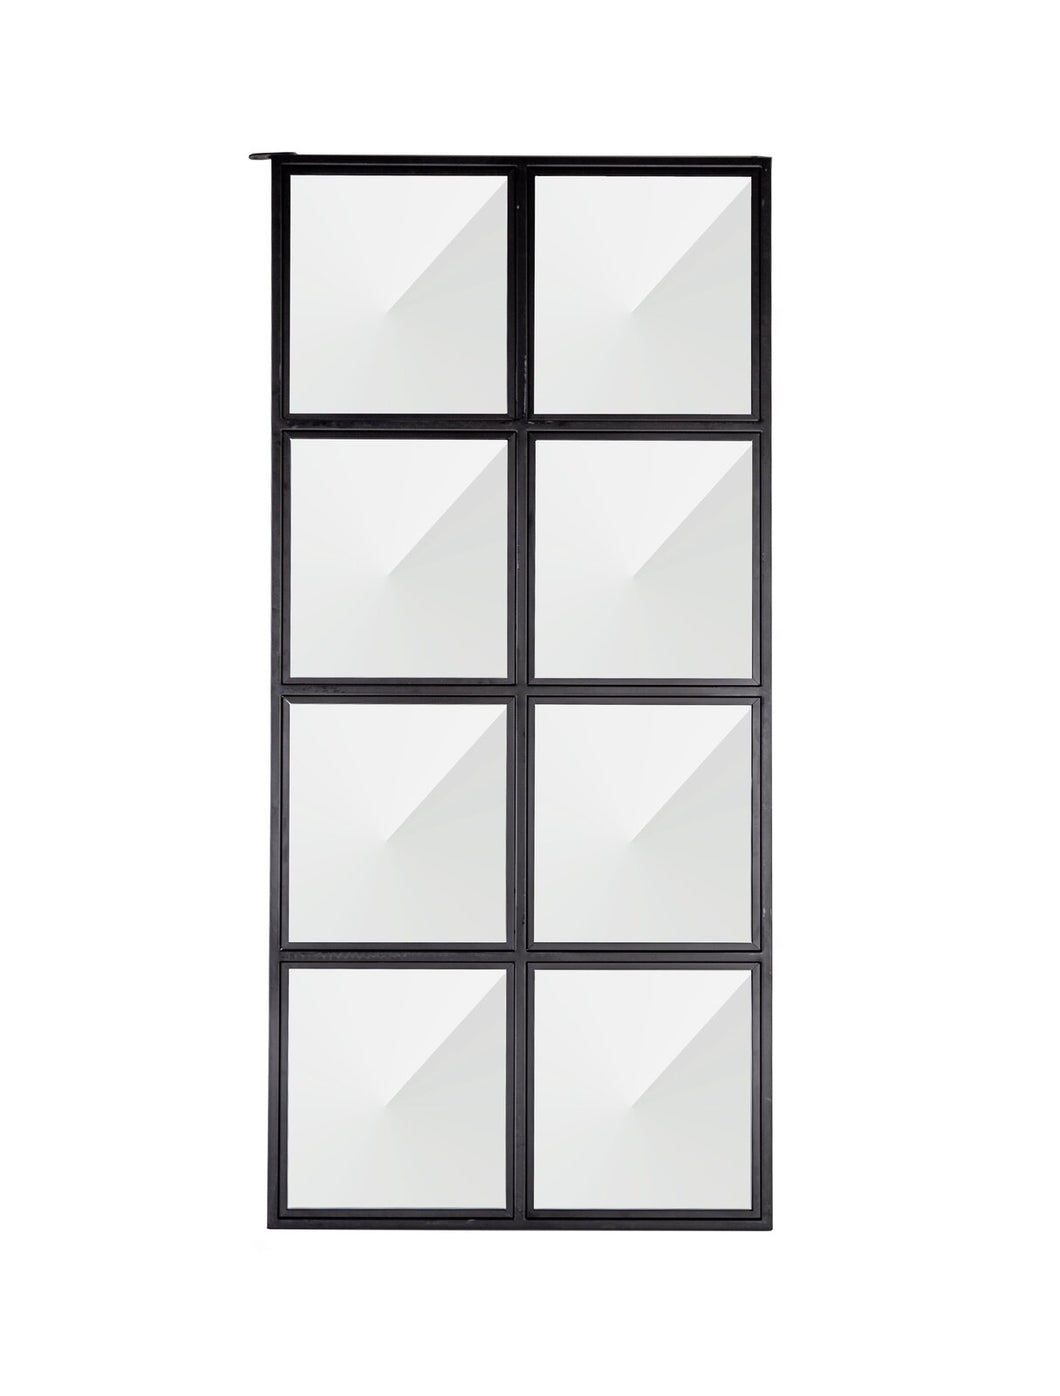 Vandermark mirrored glass Room Divider